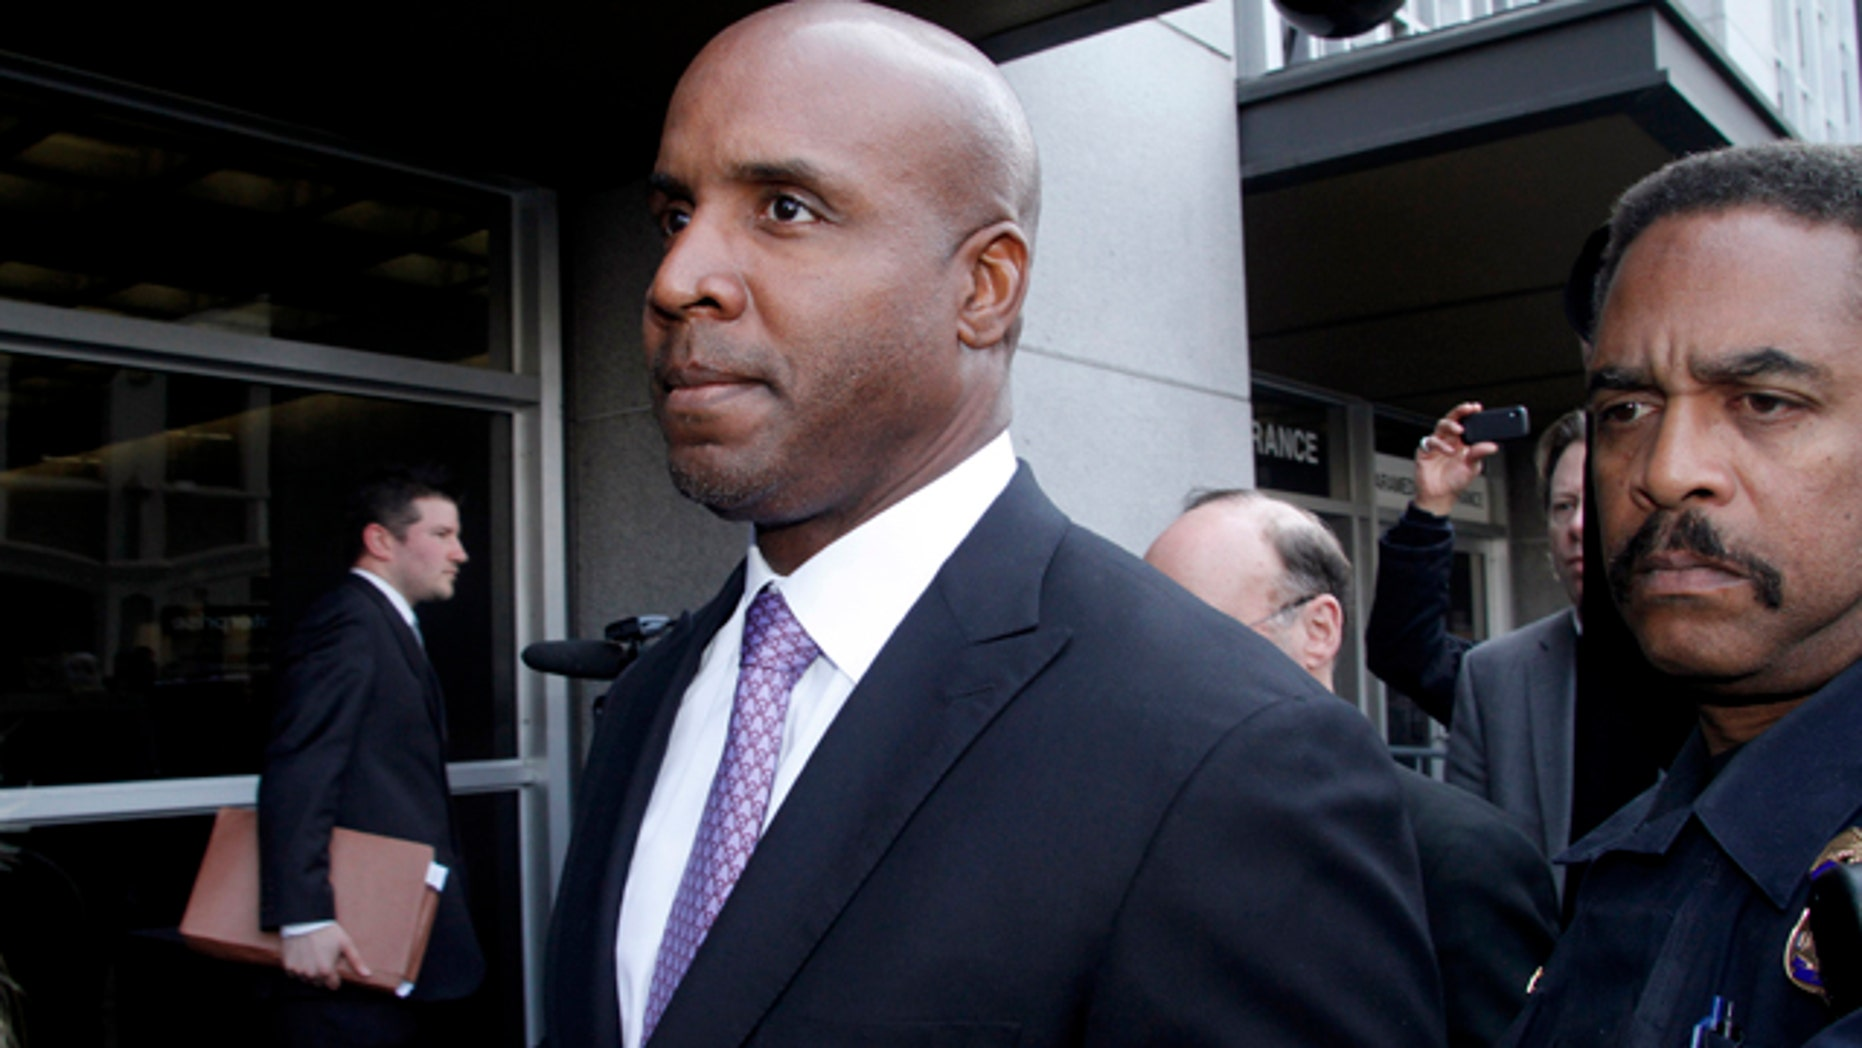 FILE - In this April 13, 2011, file photo, former baseball player Barry Bonds leaves federal court in San Francisco, after being found guilty of one count of obstruction of justice. (AP Photo/George Nikitin, File)